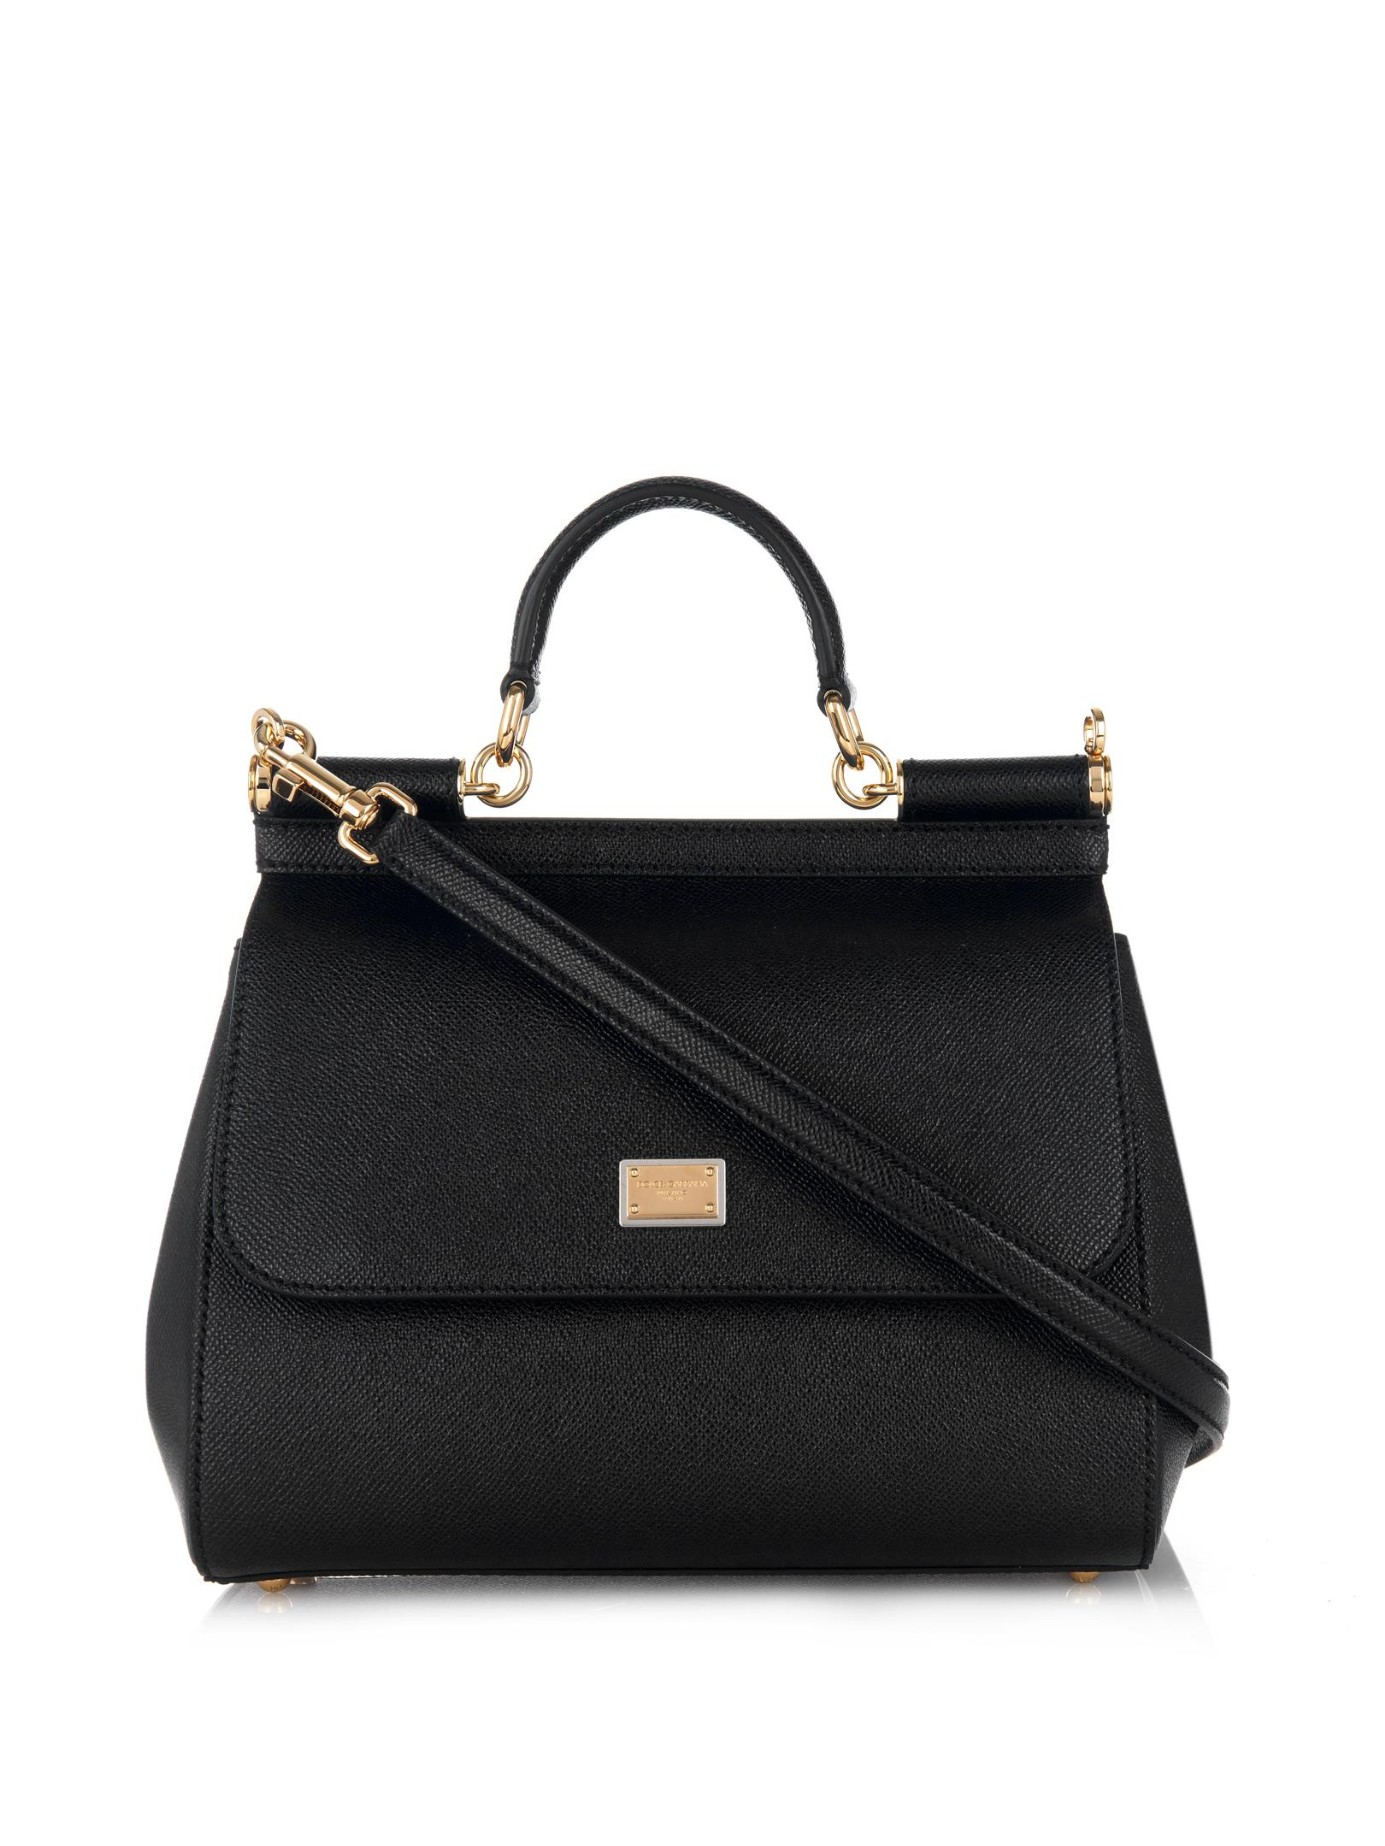 849a3ffb8261 Dolce   Gabbana Sicily Dauphine Medium Cross-Body Bag in Black - Lyst